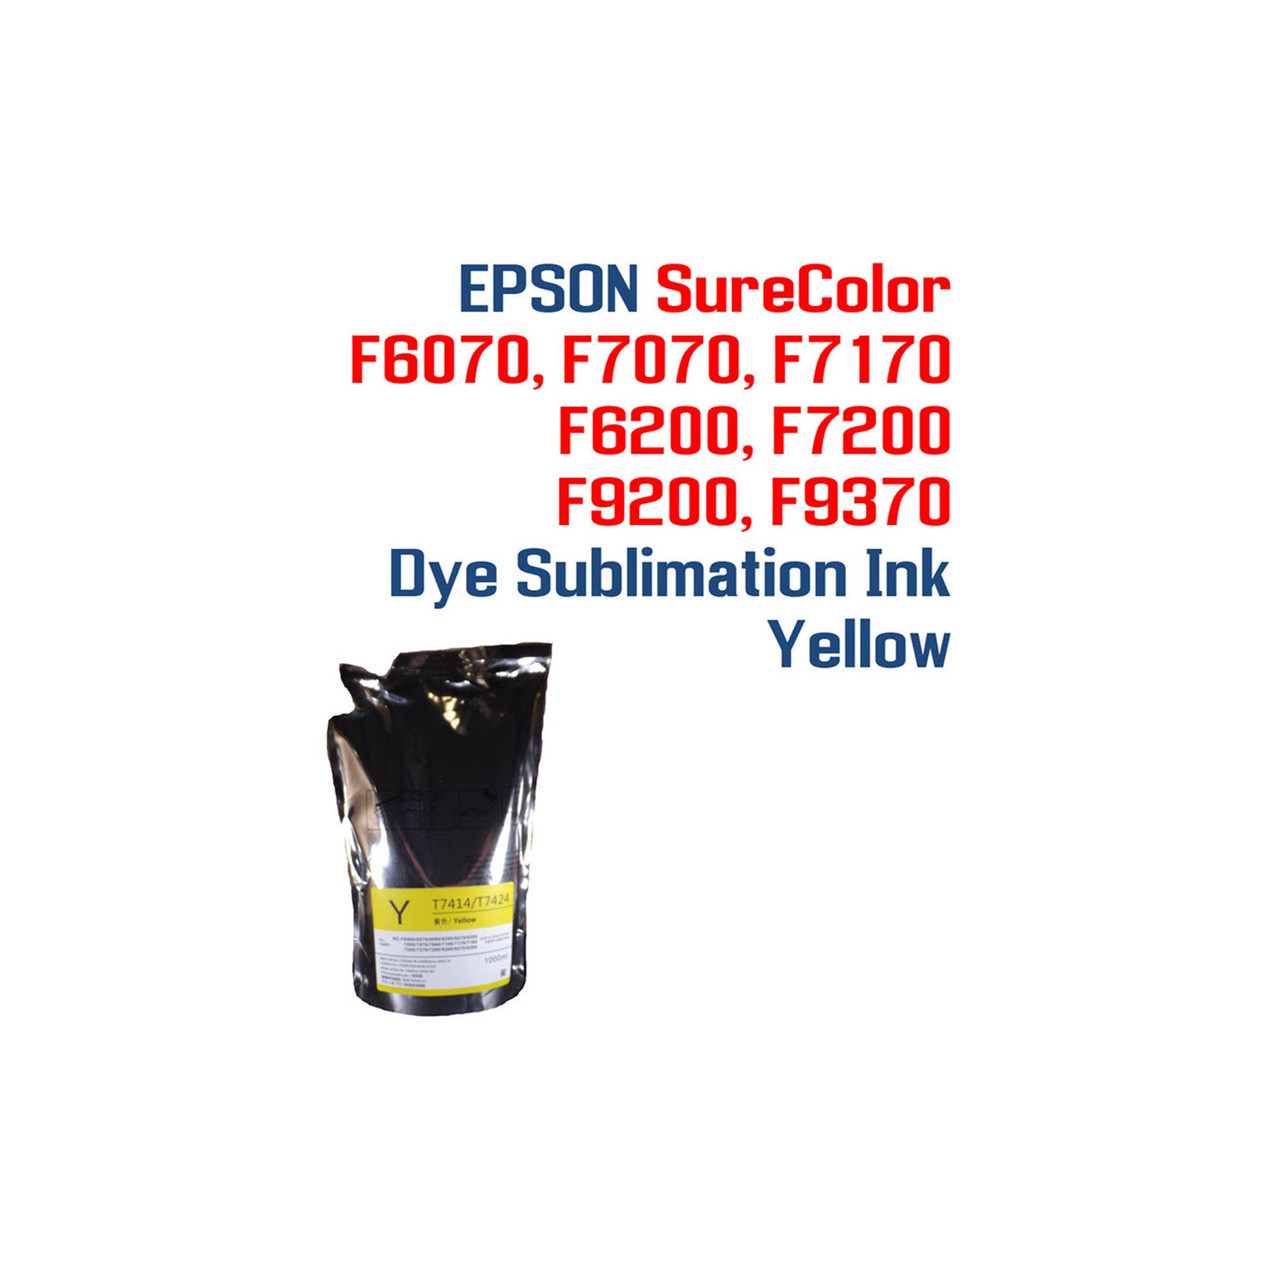 Refillable Ink Cartridges with auto reset chips for Epson WorkForce WF-7010 WF-7510 WF-7520 printers